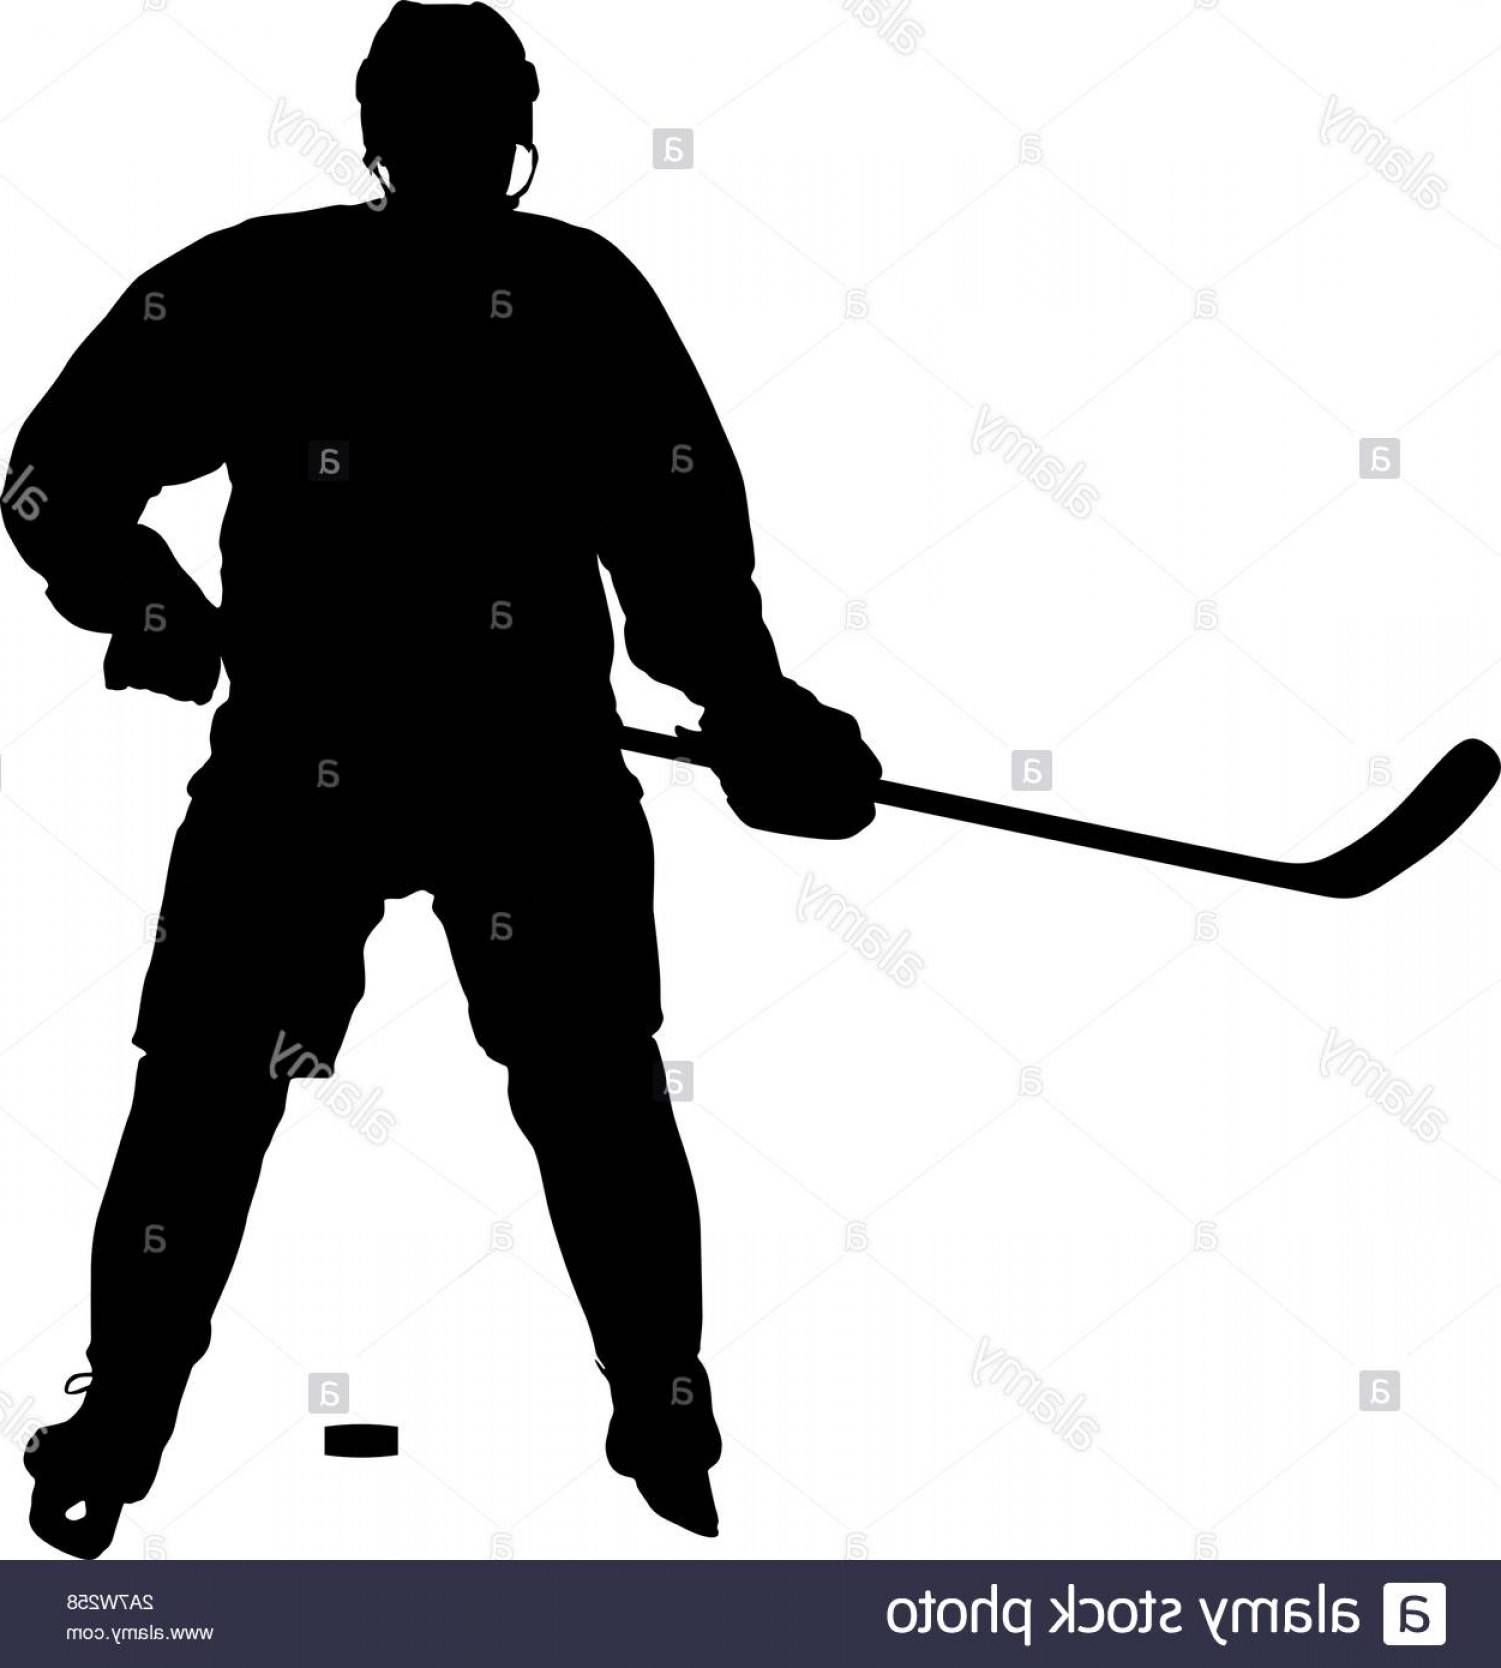 Hockey Player Silhouette Vector: Silhouette Of Hockey Player Isolated On White Image